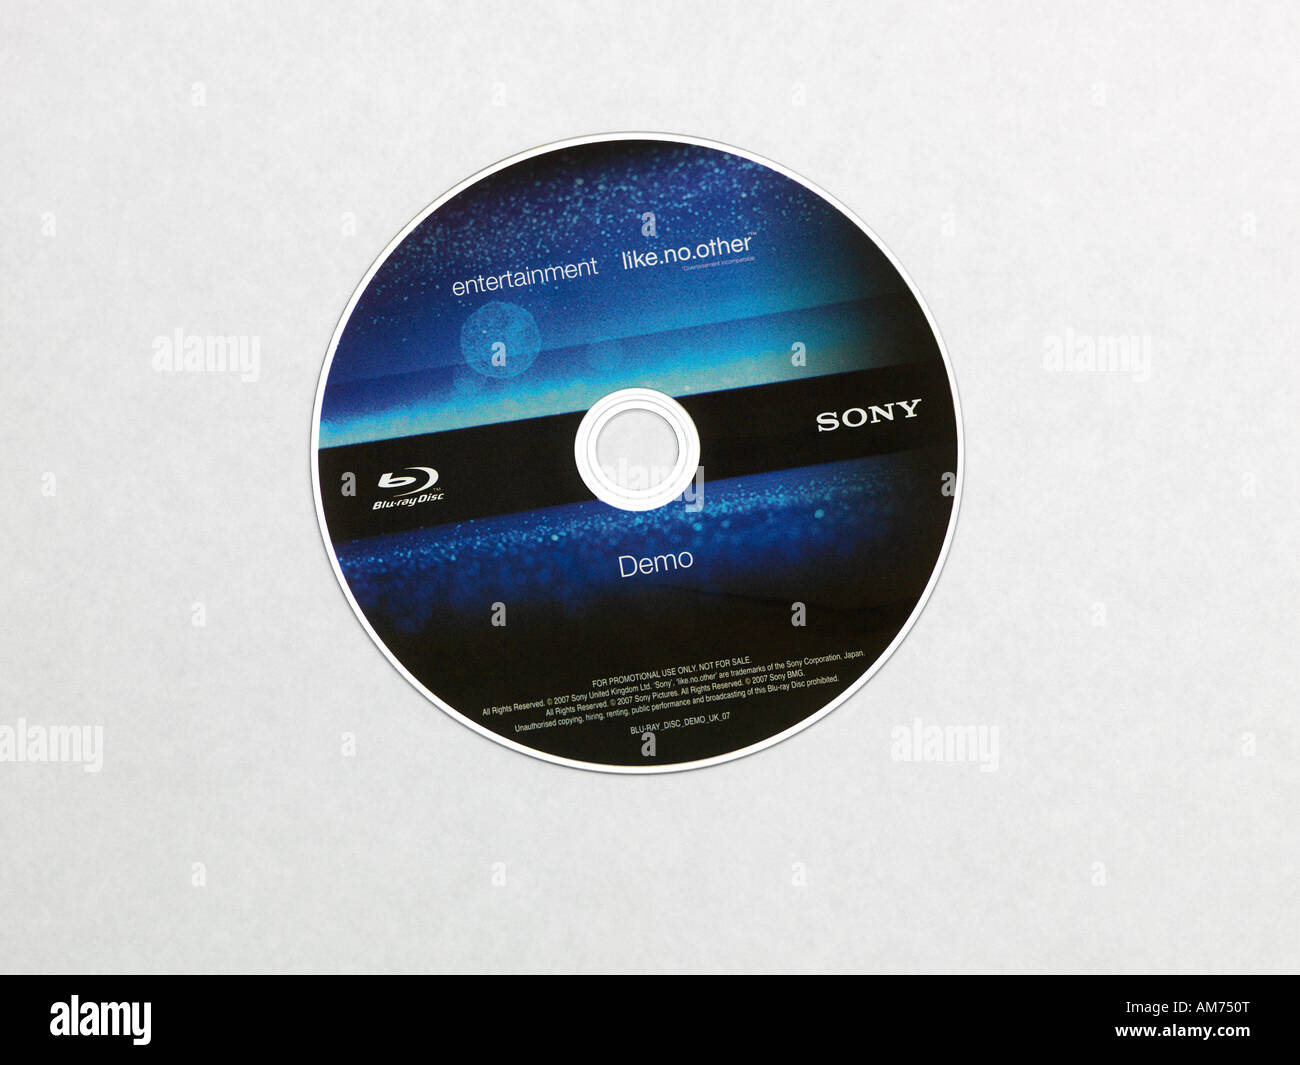 Blu Ray Disc Showing the BD Label - Stock Image